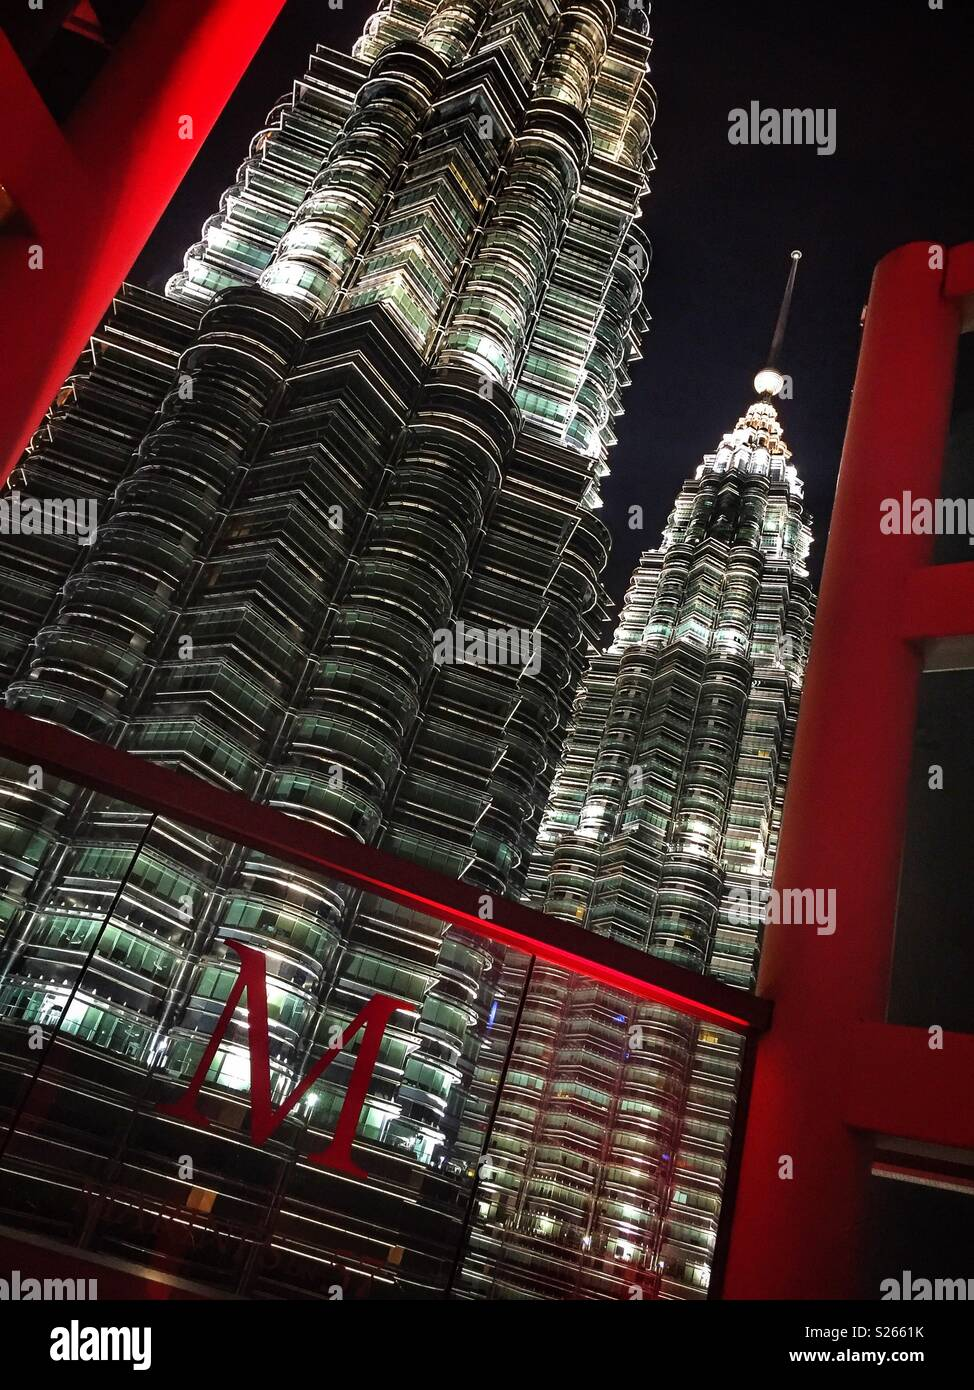 Petronas Twin Towers from Marini's On 57, the highest restaurant and bar in Malaysia, on the rooftop of the adjacent Petronas Tower 3, Kuala Lumpur City Centre - Stock Image